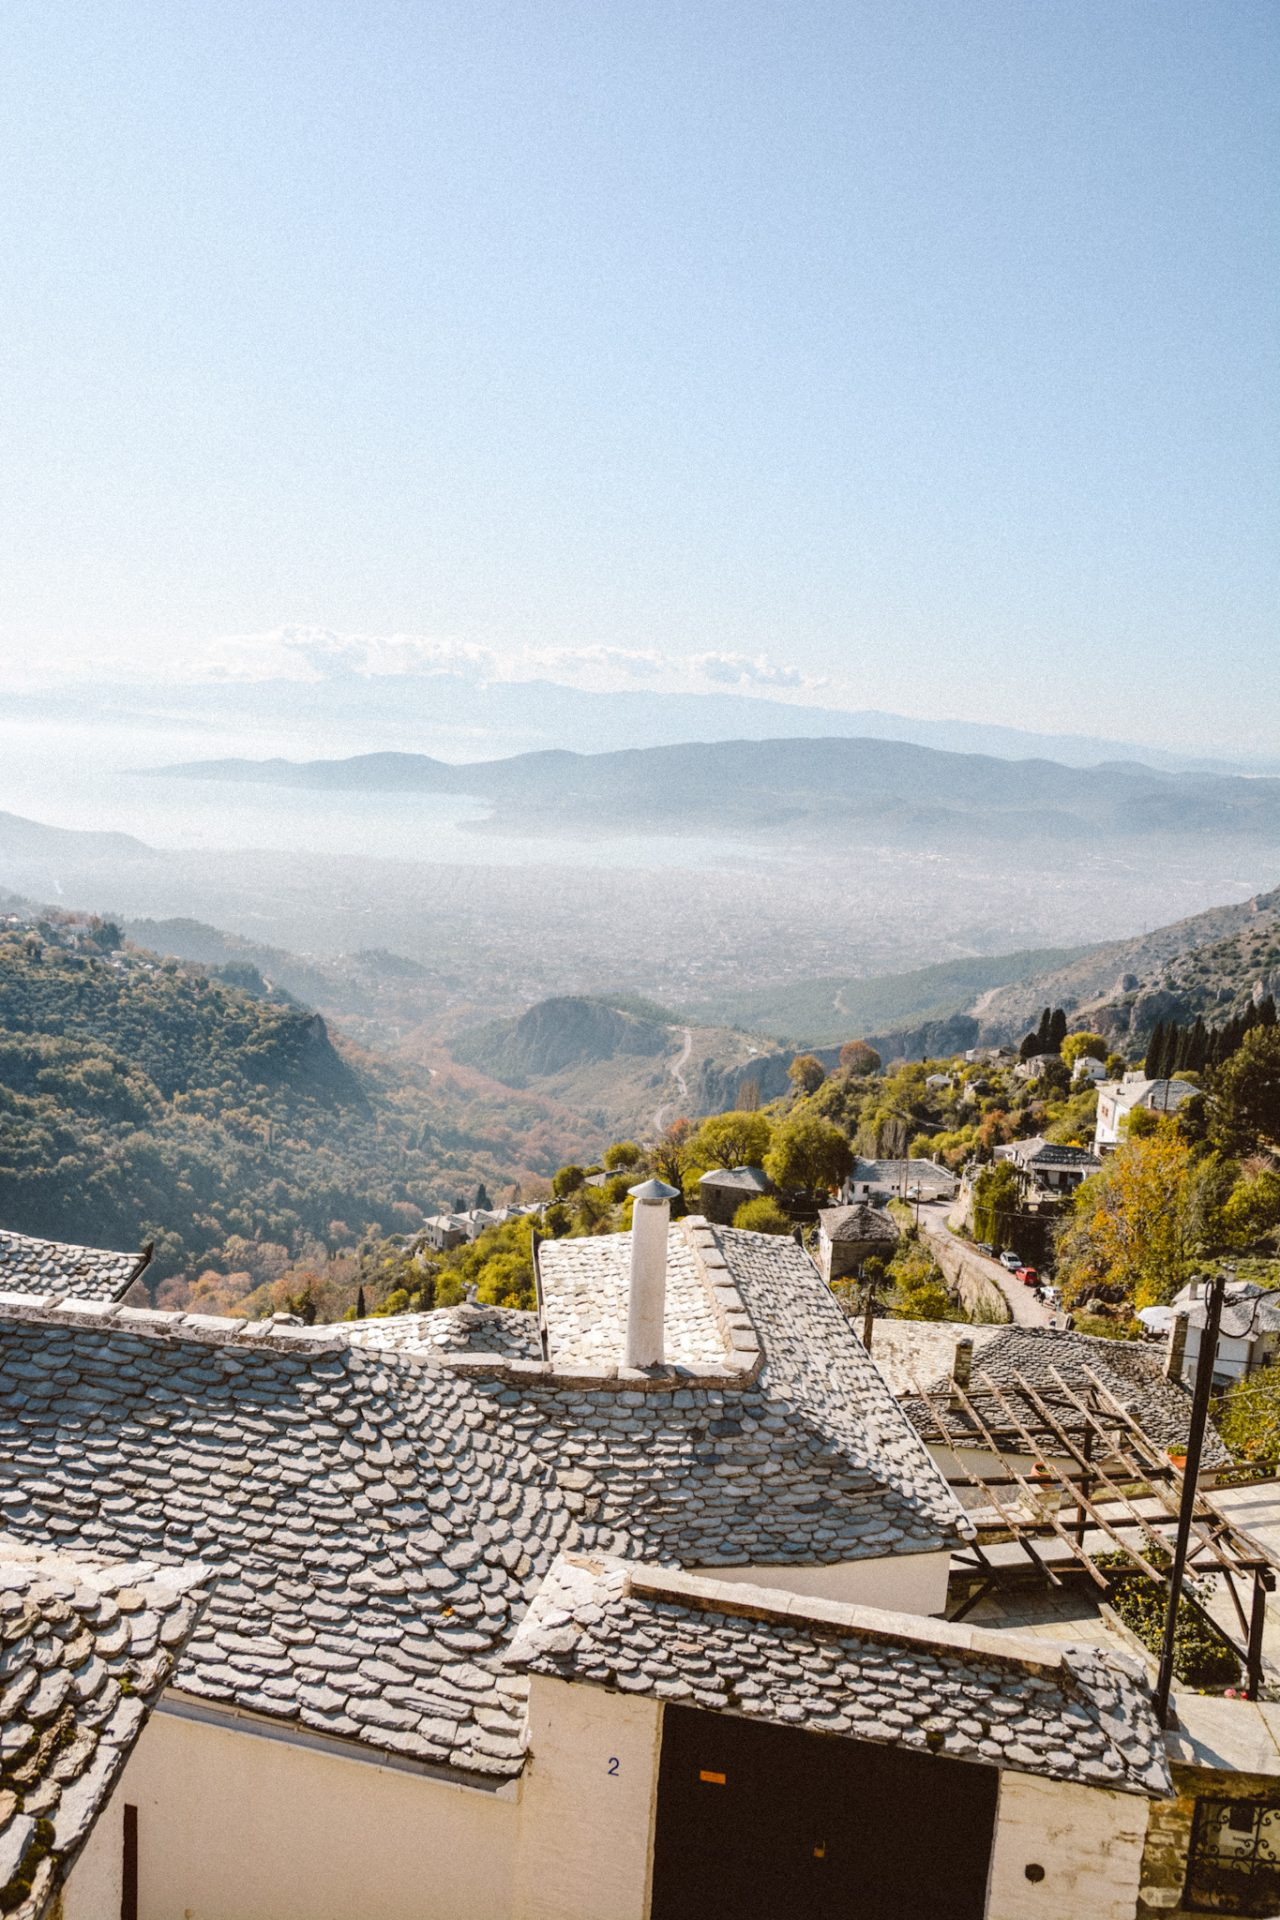 Guide to Makrinitsa, Pelion in Greece